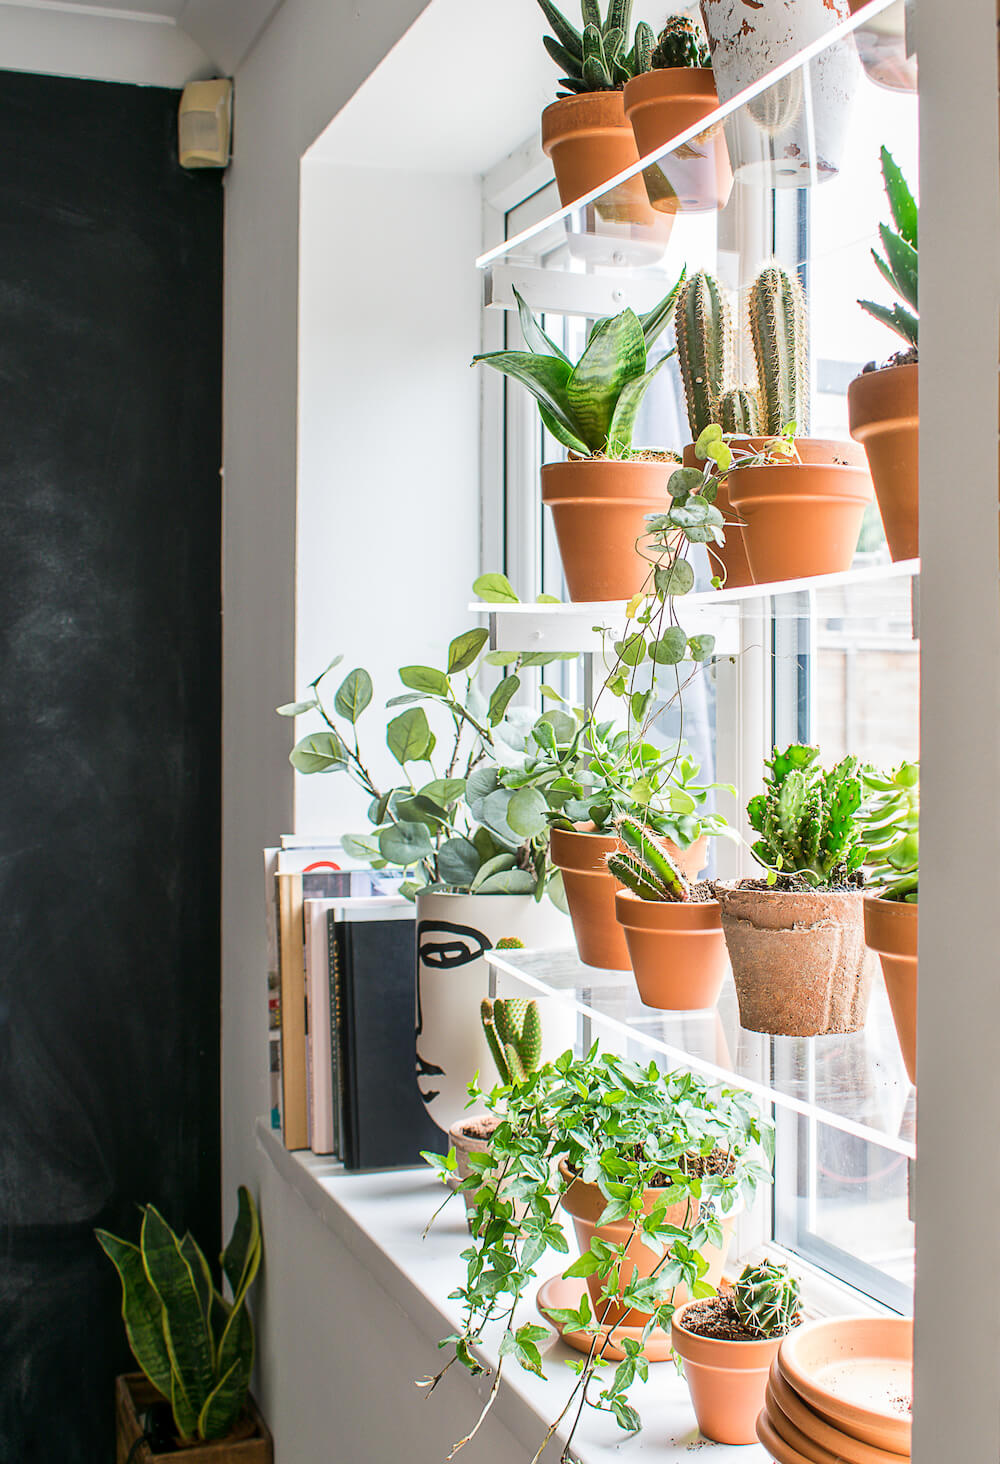 A side view of the window plant shelf.